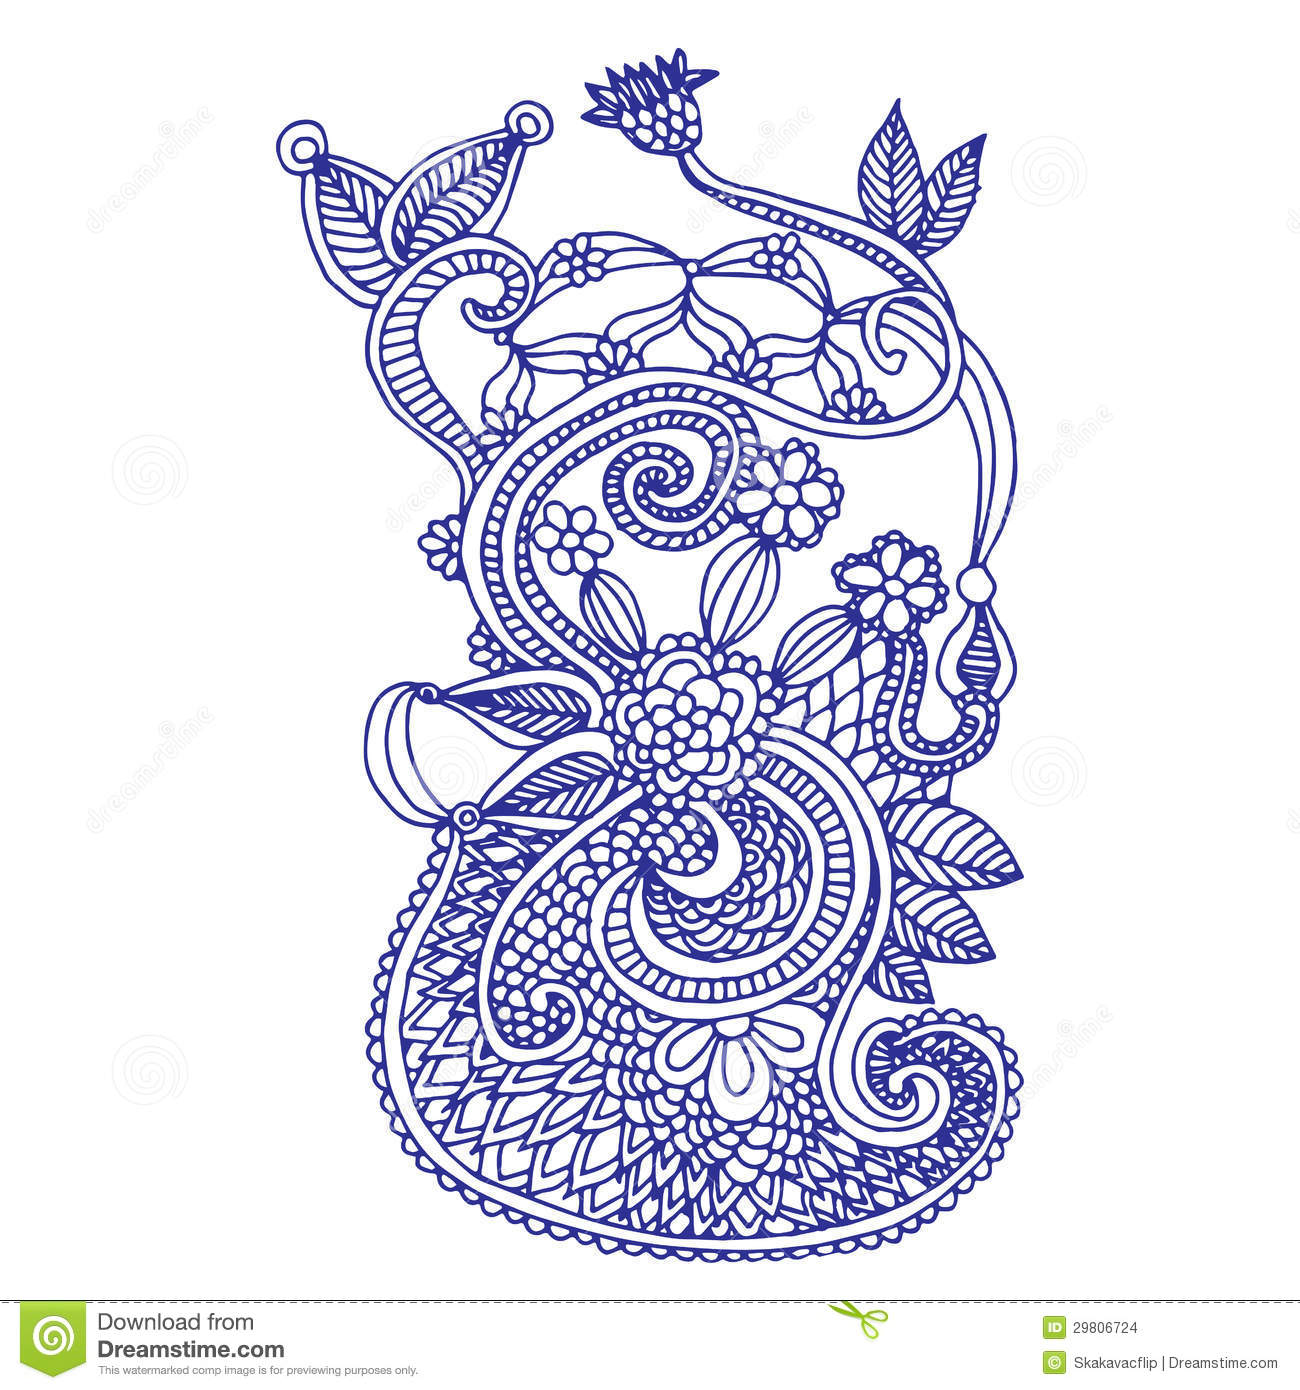 Floral Art Line Design : Neckline embroidery design stock illustration